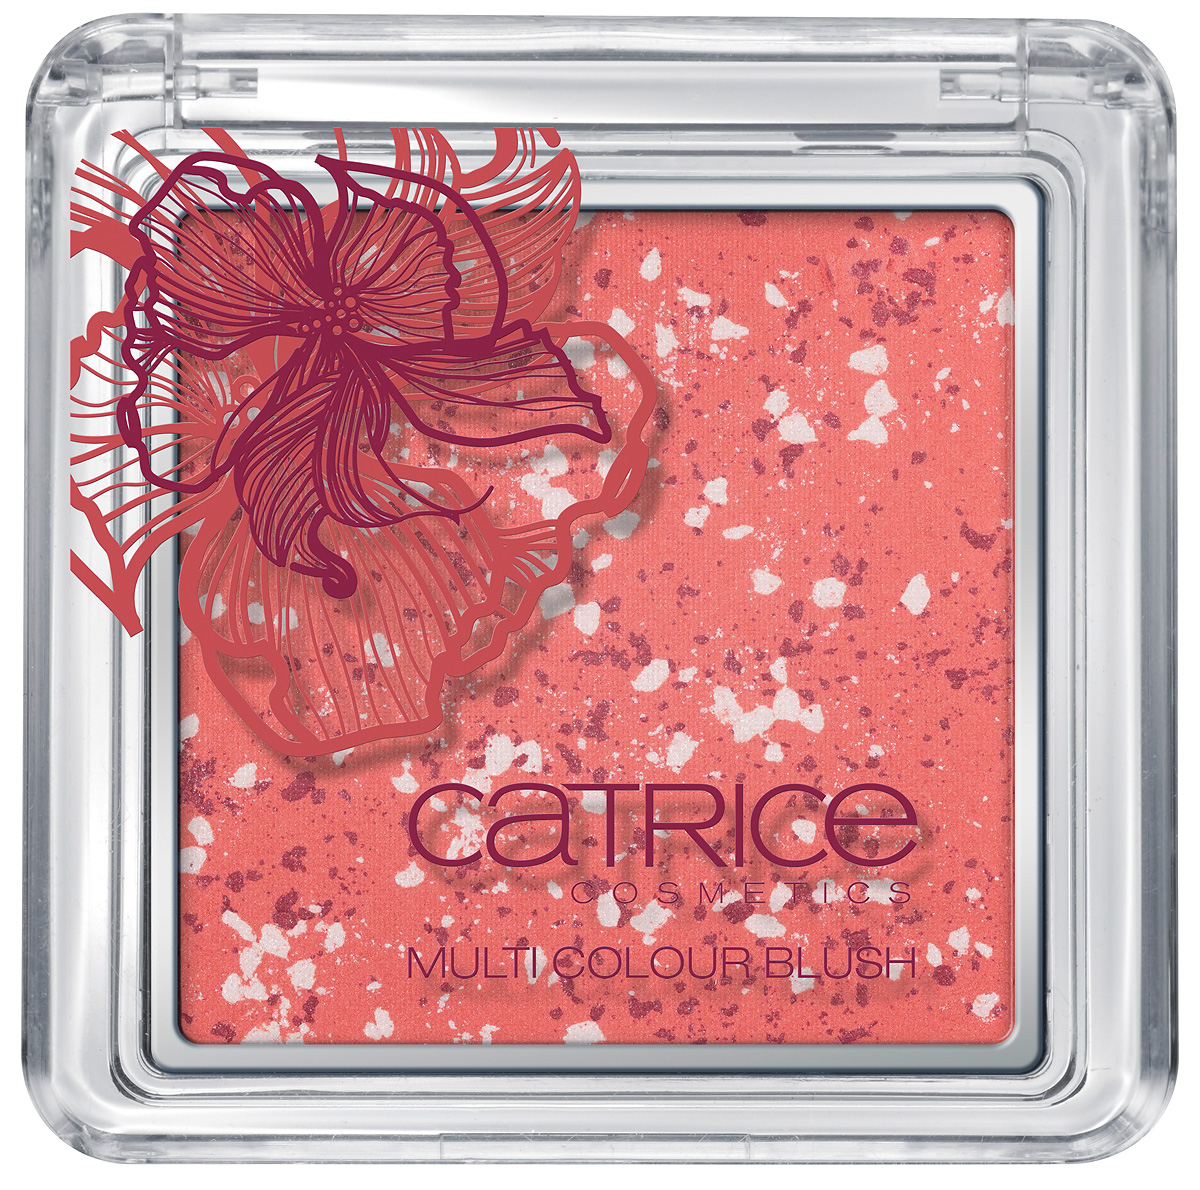 Hollywood's FABULOUS 40s by CATRICE – Multi Colour Blush